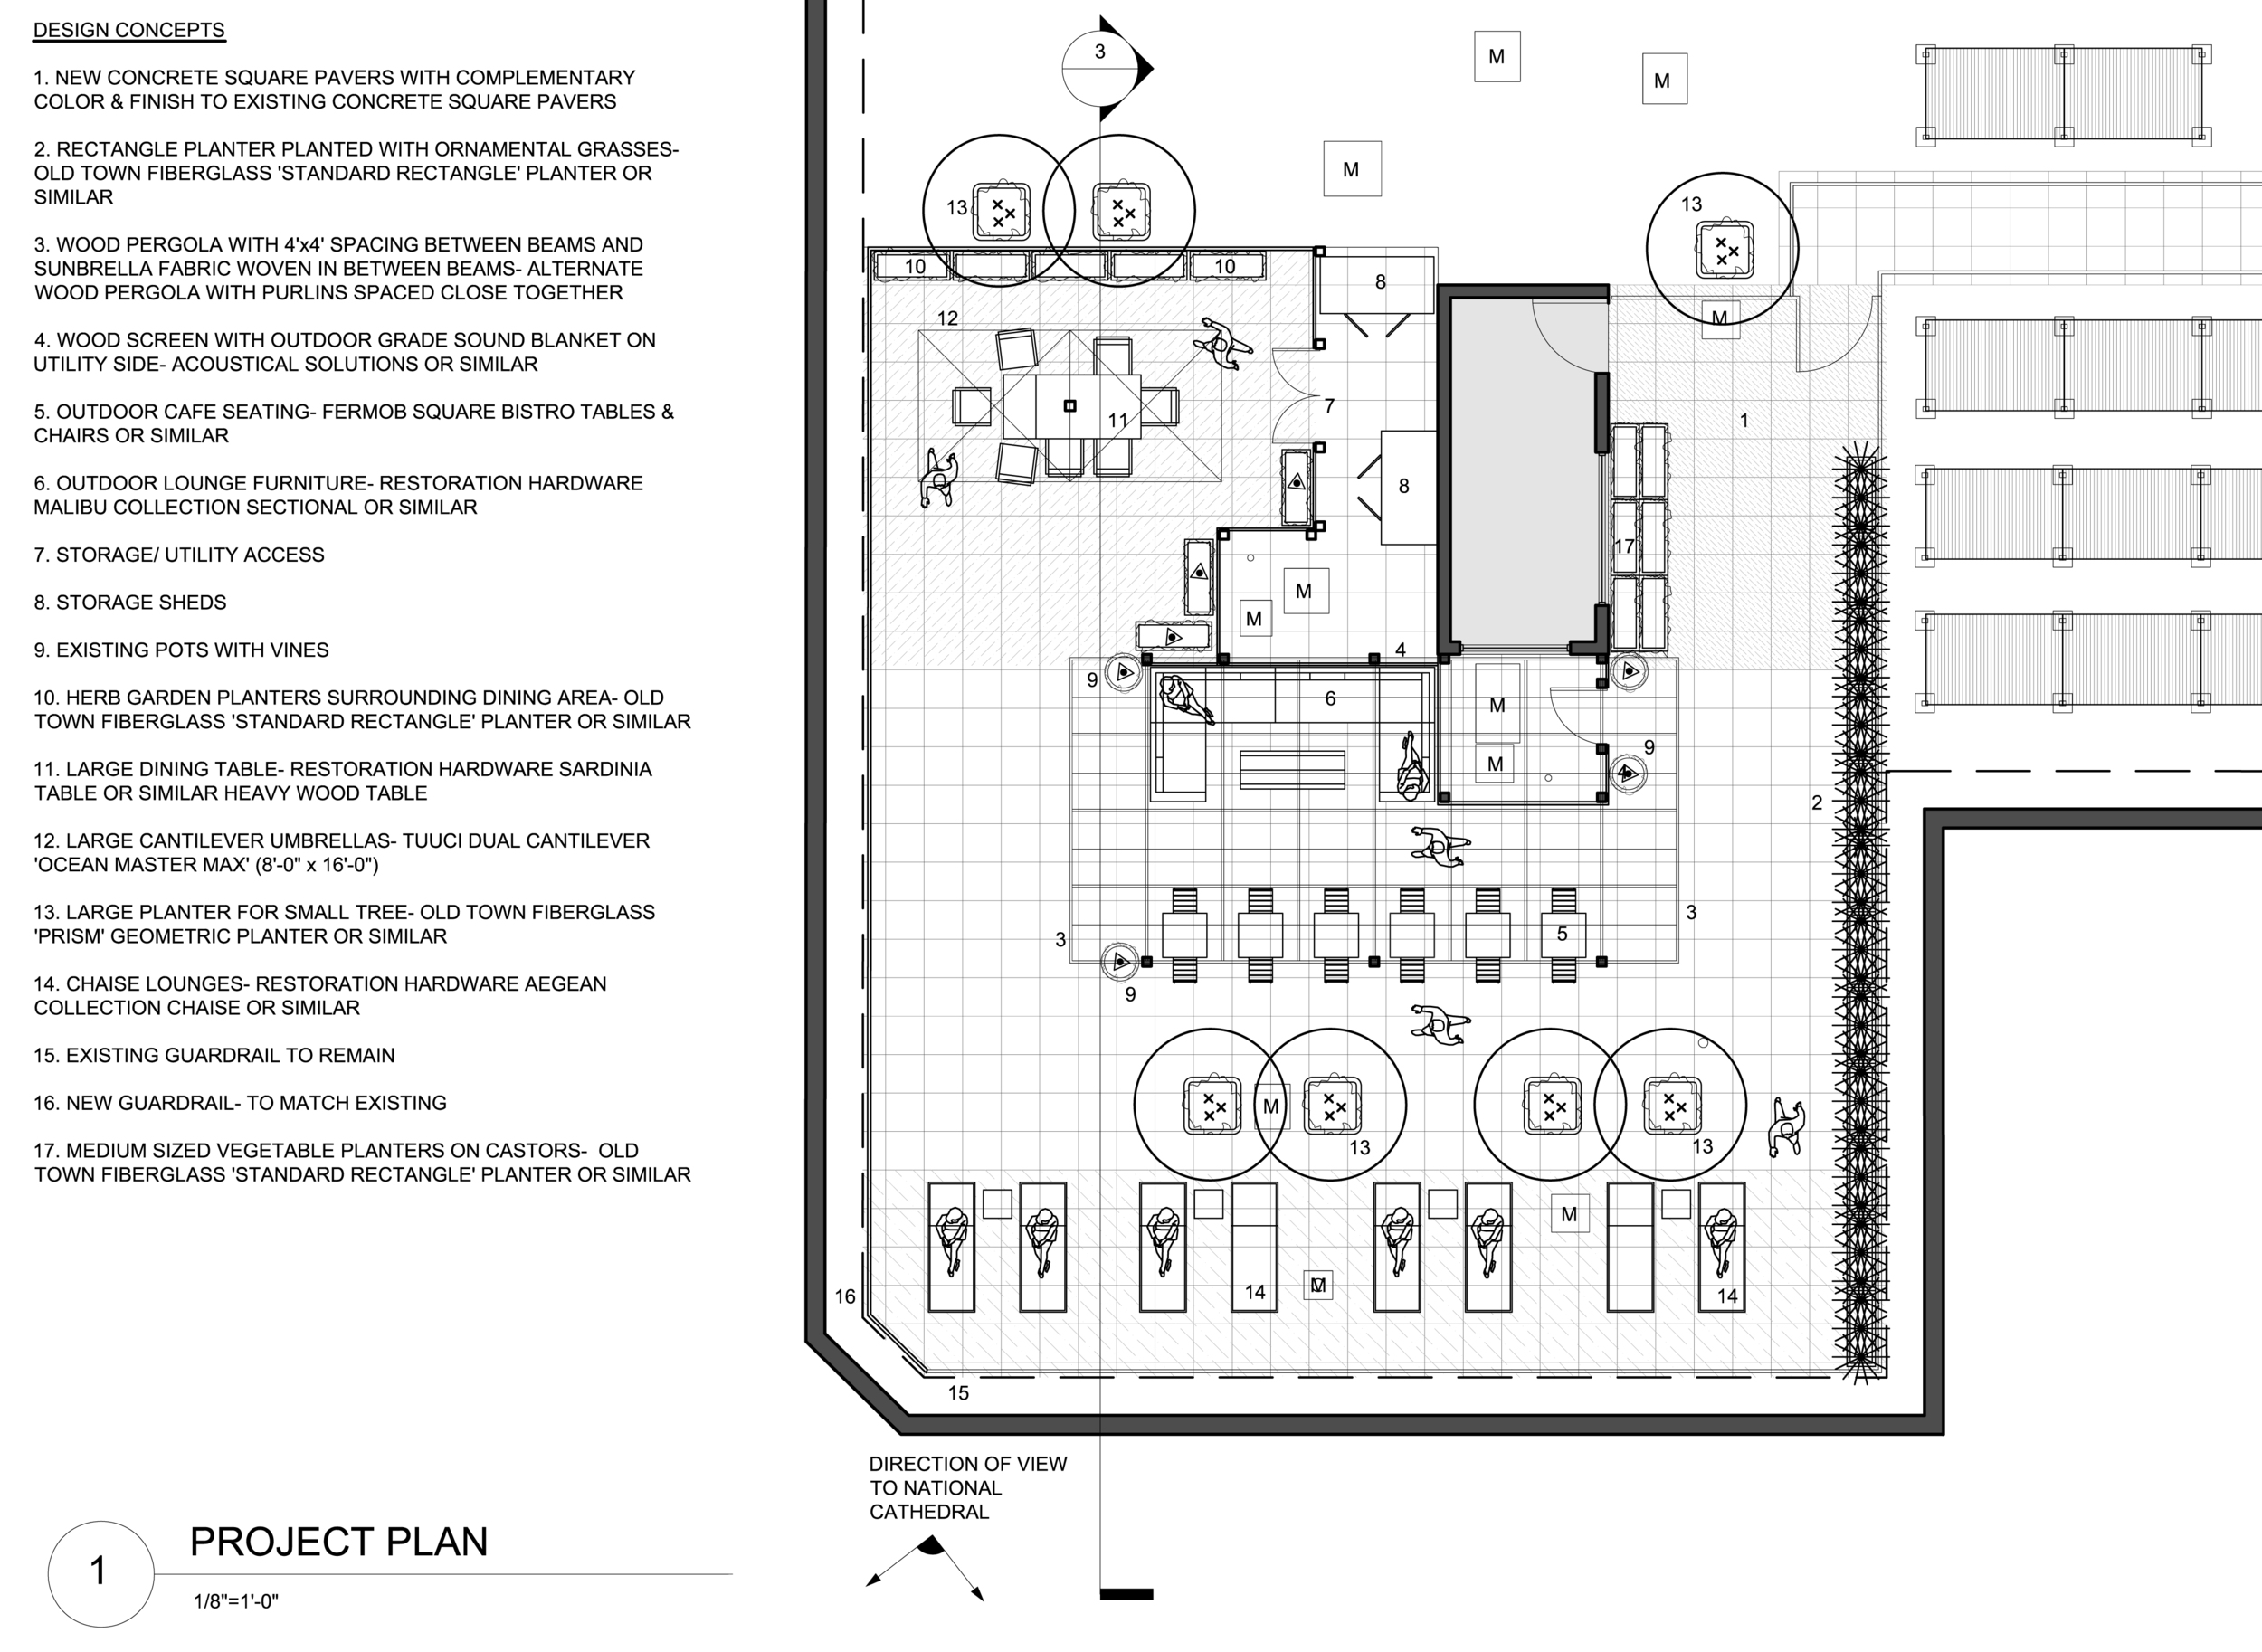 P:\14168-02 4600 Connecticut Roof Deck\CAD Working Files\4600 Co